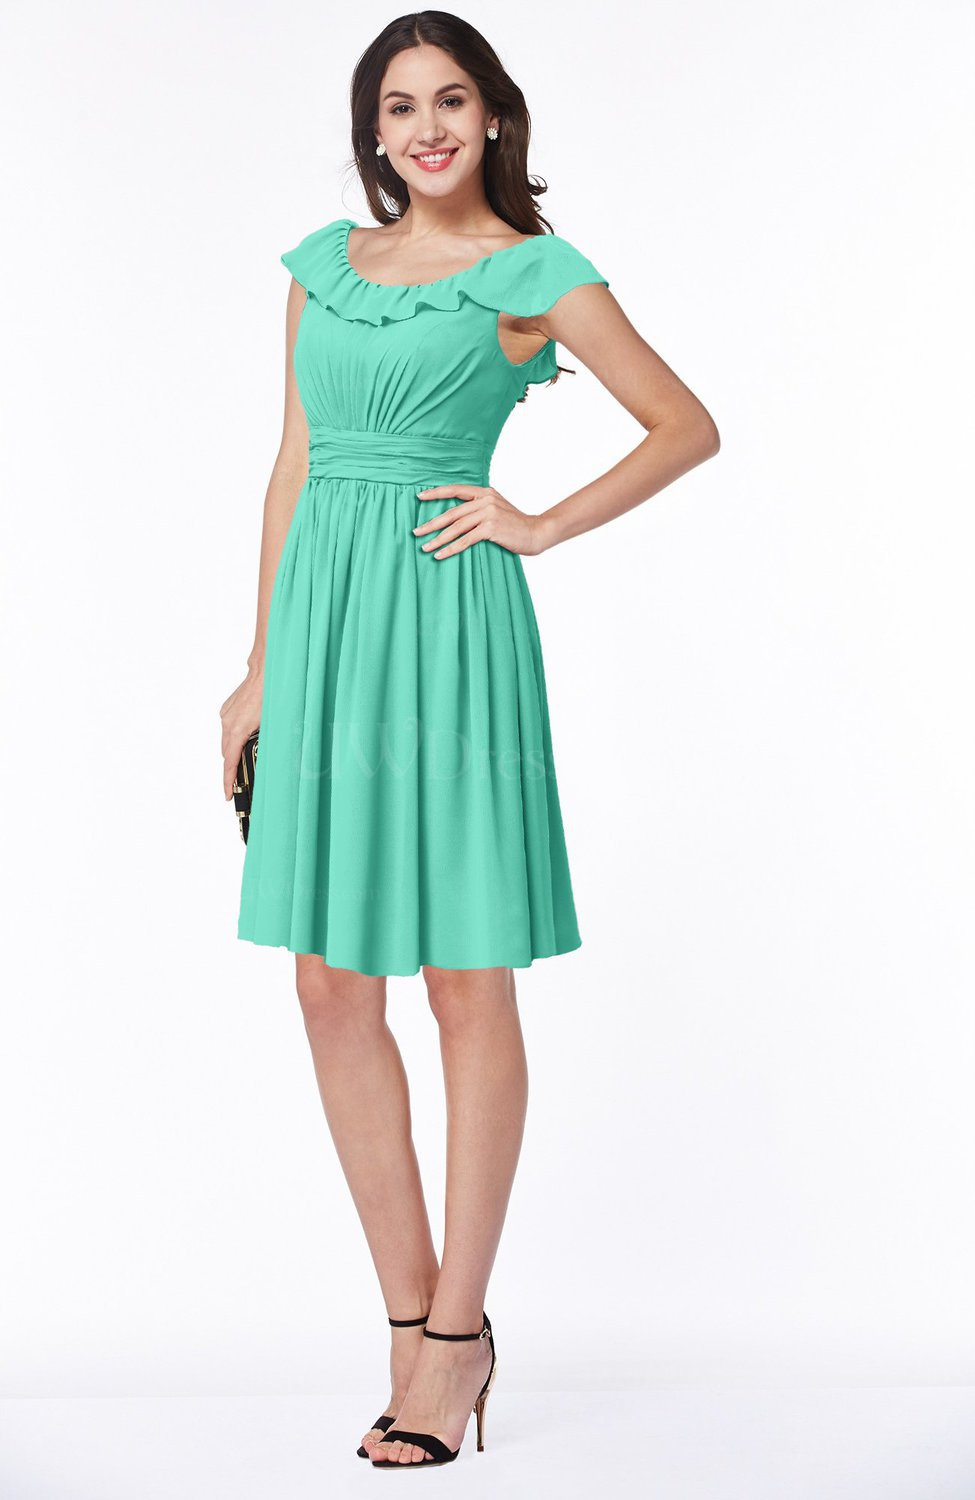 8960a39970d Seafoam Green Cute Scoop Short Sleeve Zip up Sash Plus Size Bridesmaid  Dresses (Style D08708)